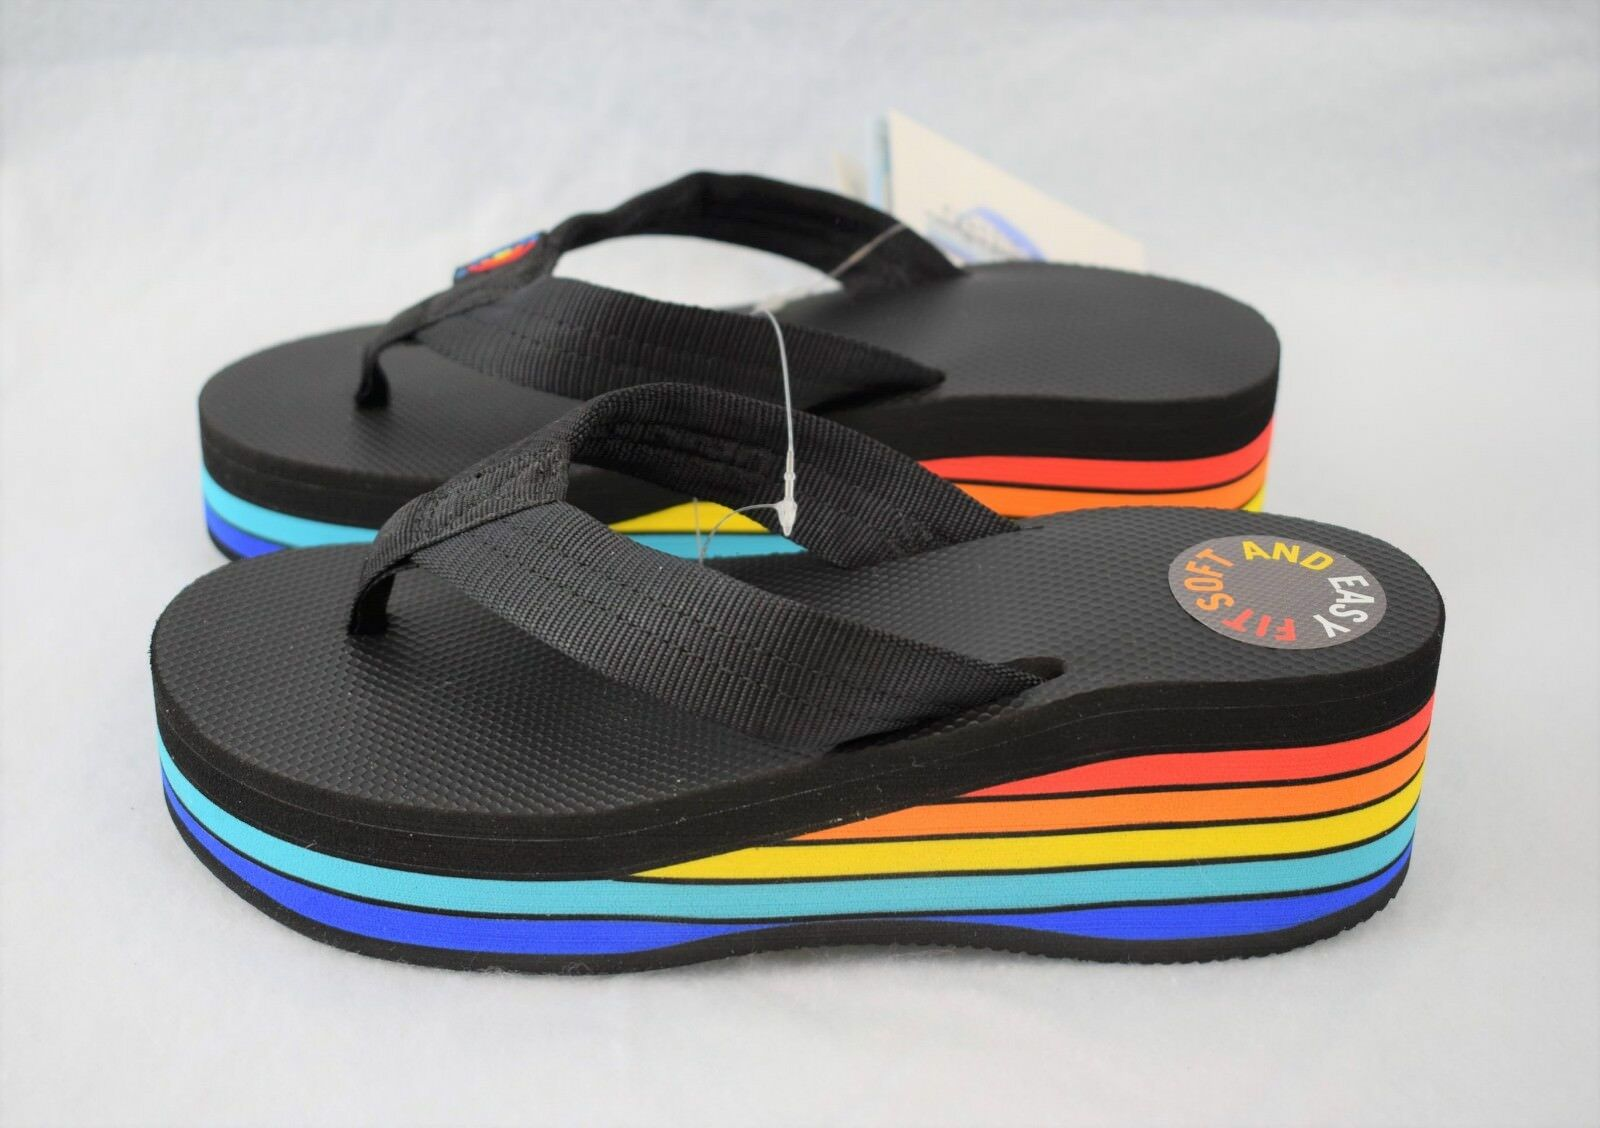 Women's XL 8.5-9.5 8.5-9.5 8.5-9.5 RAINBOW 6 Layer Rainbow Wedge Rubber w  Black Strap Sandals 7bc5ef